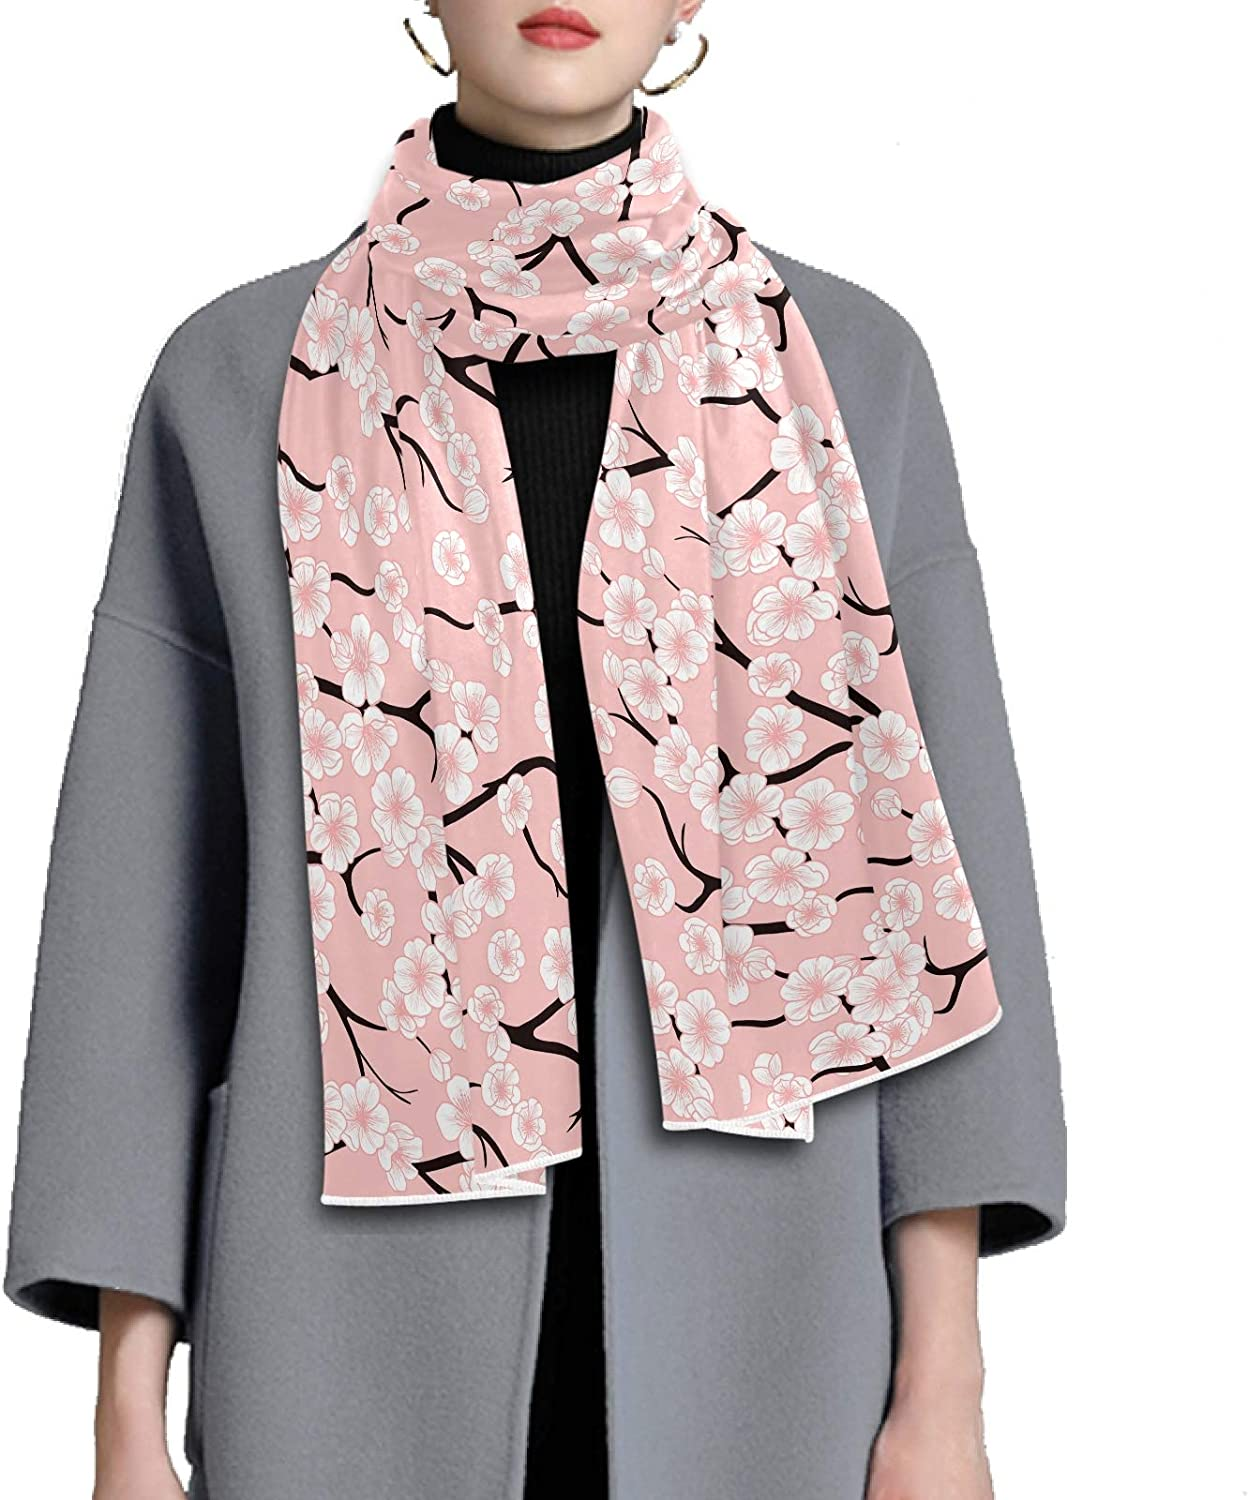 Scarf for Women and Men Cherry Blossoms Shawl Wraps Blanket Scarf Thick Soft Winter Large Scarves Lightweight